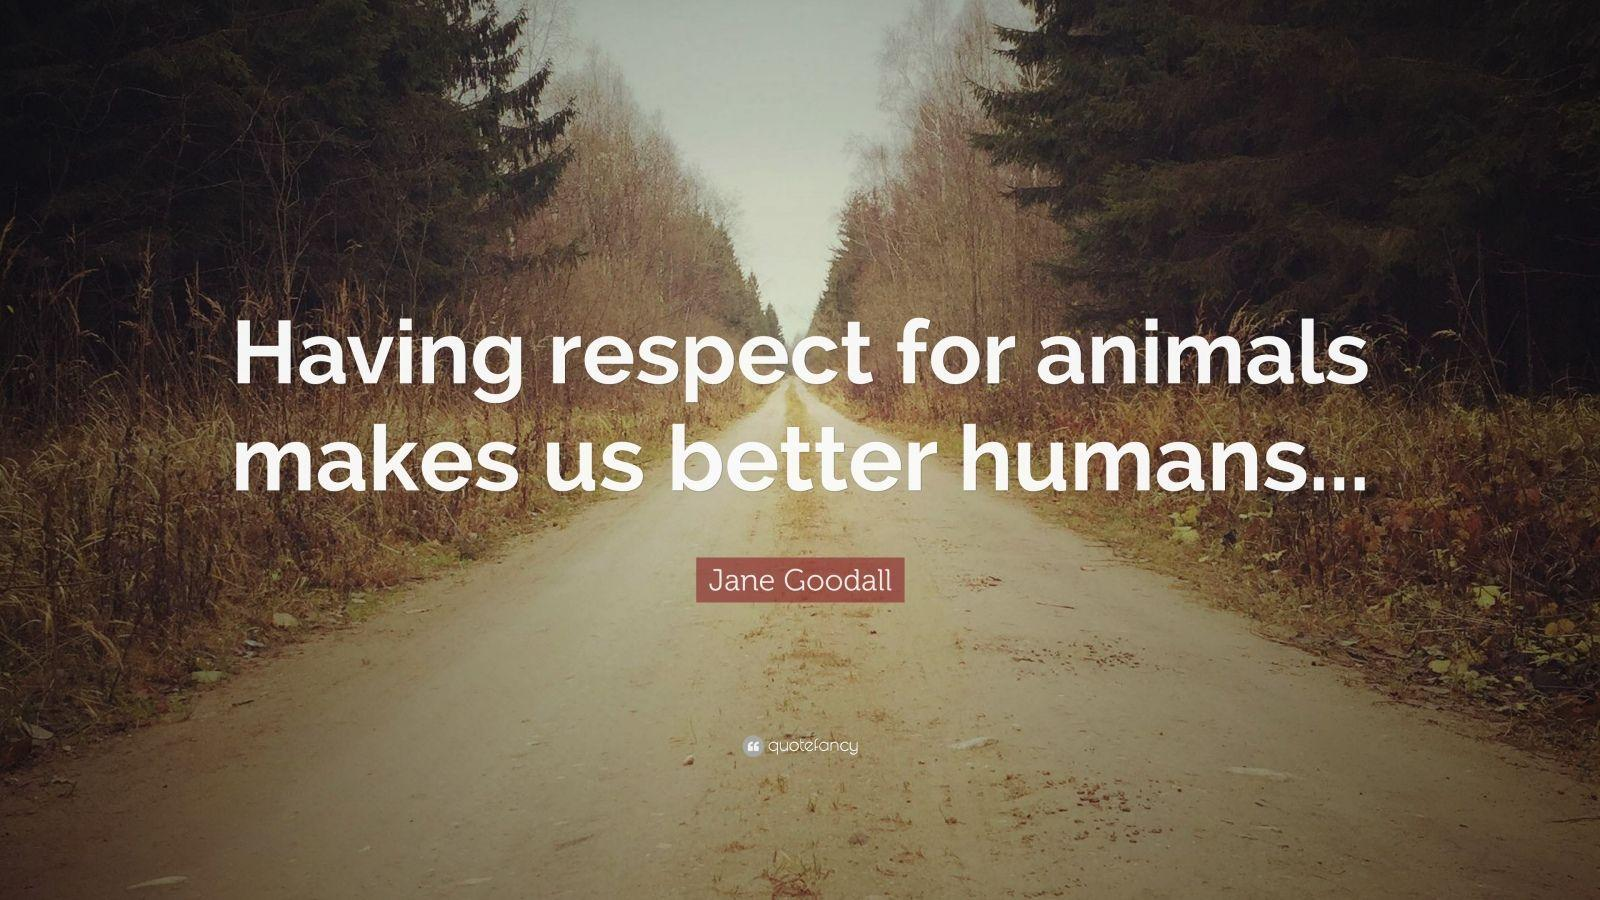 Jane Goodall Quotes (100 wallpapers) - Quotefancy